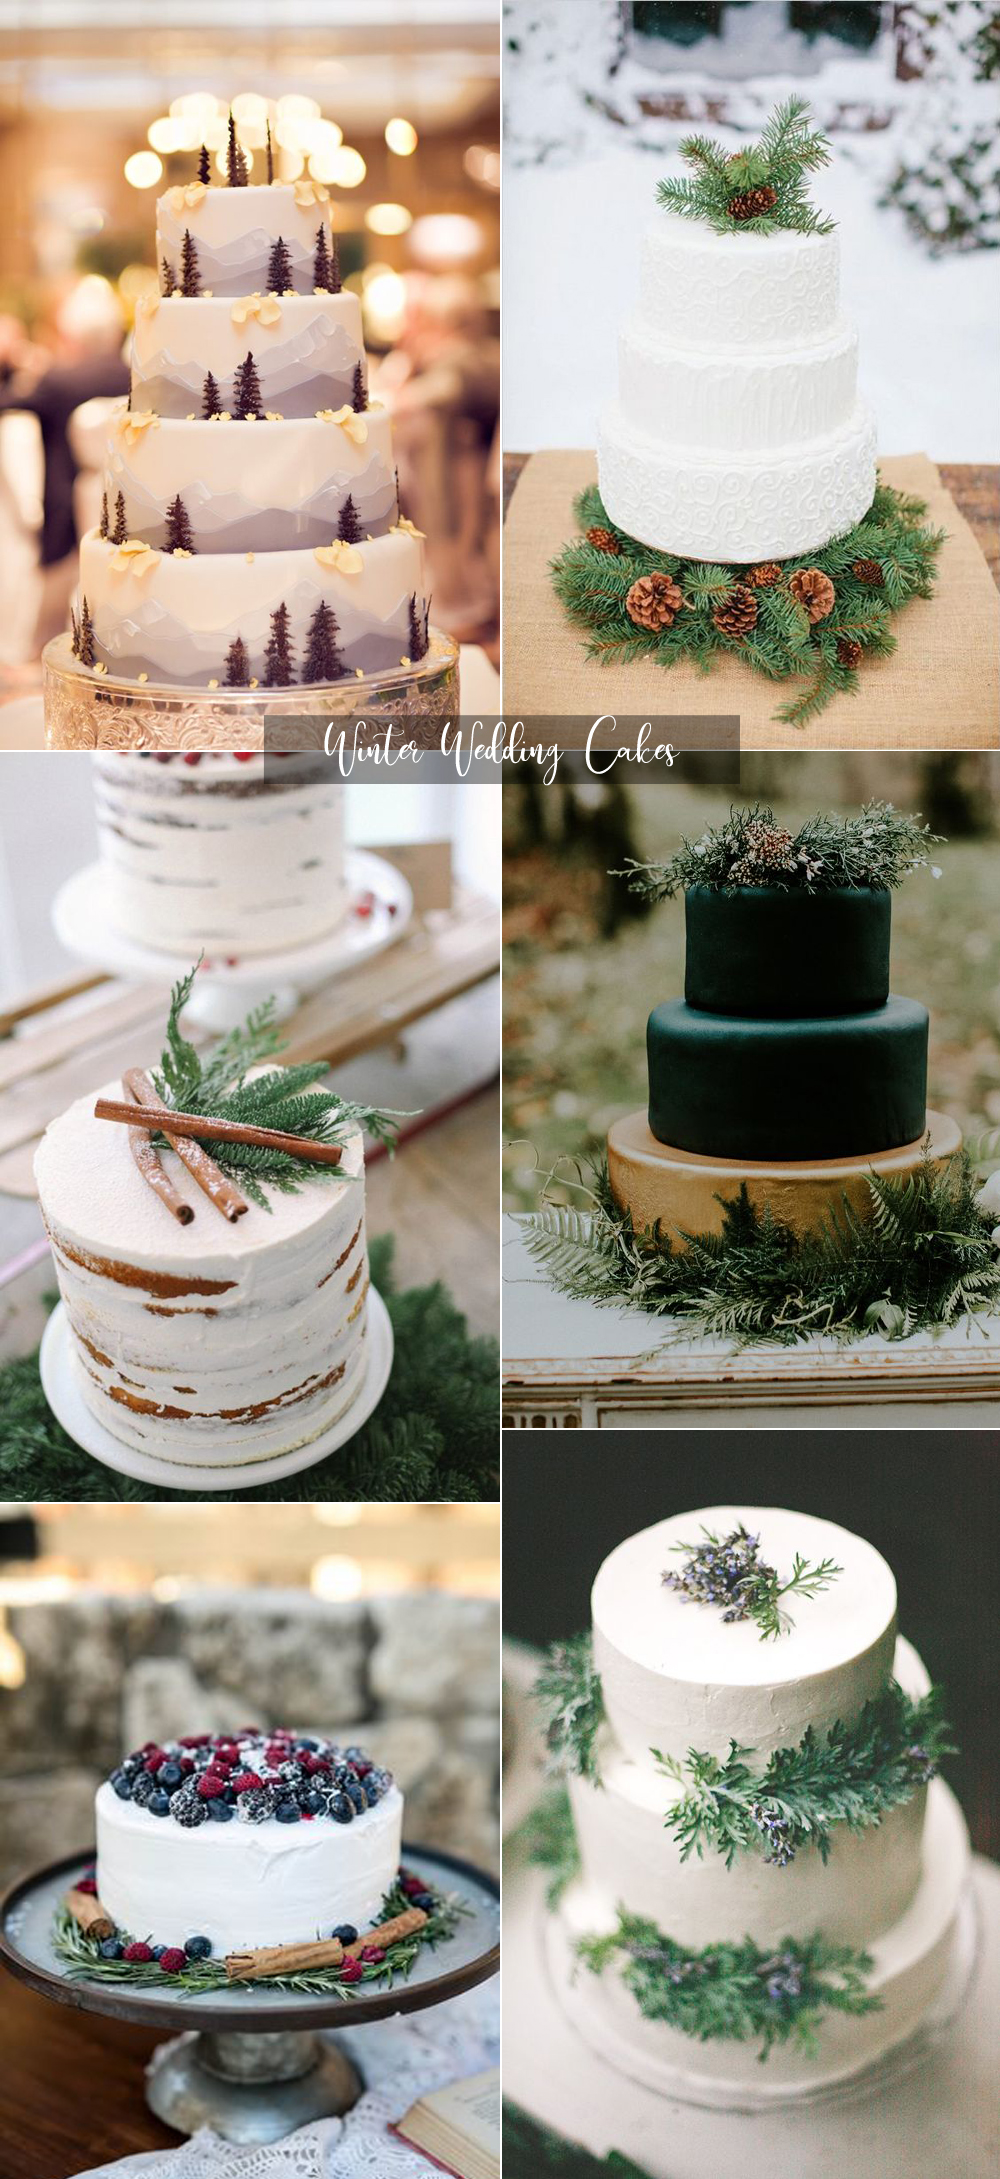 {Image Sources: Pine tree cake featured on  Style Me Pretty  - photo by  Real Photography ; White and Pine cake featured on  Happy Wed ; Cinnamon and white cake featured on  Brit + Co ; Dark green cake featured on  Green Wedding Shoes  - photo by  Hazelwood Photography ; Fruit and white cake featured on  Wedding Wire  - photo by  Paisley Layne Photography ; Purple, green and white cake featured on  Brides }